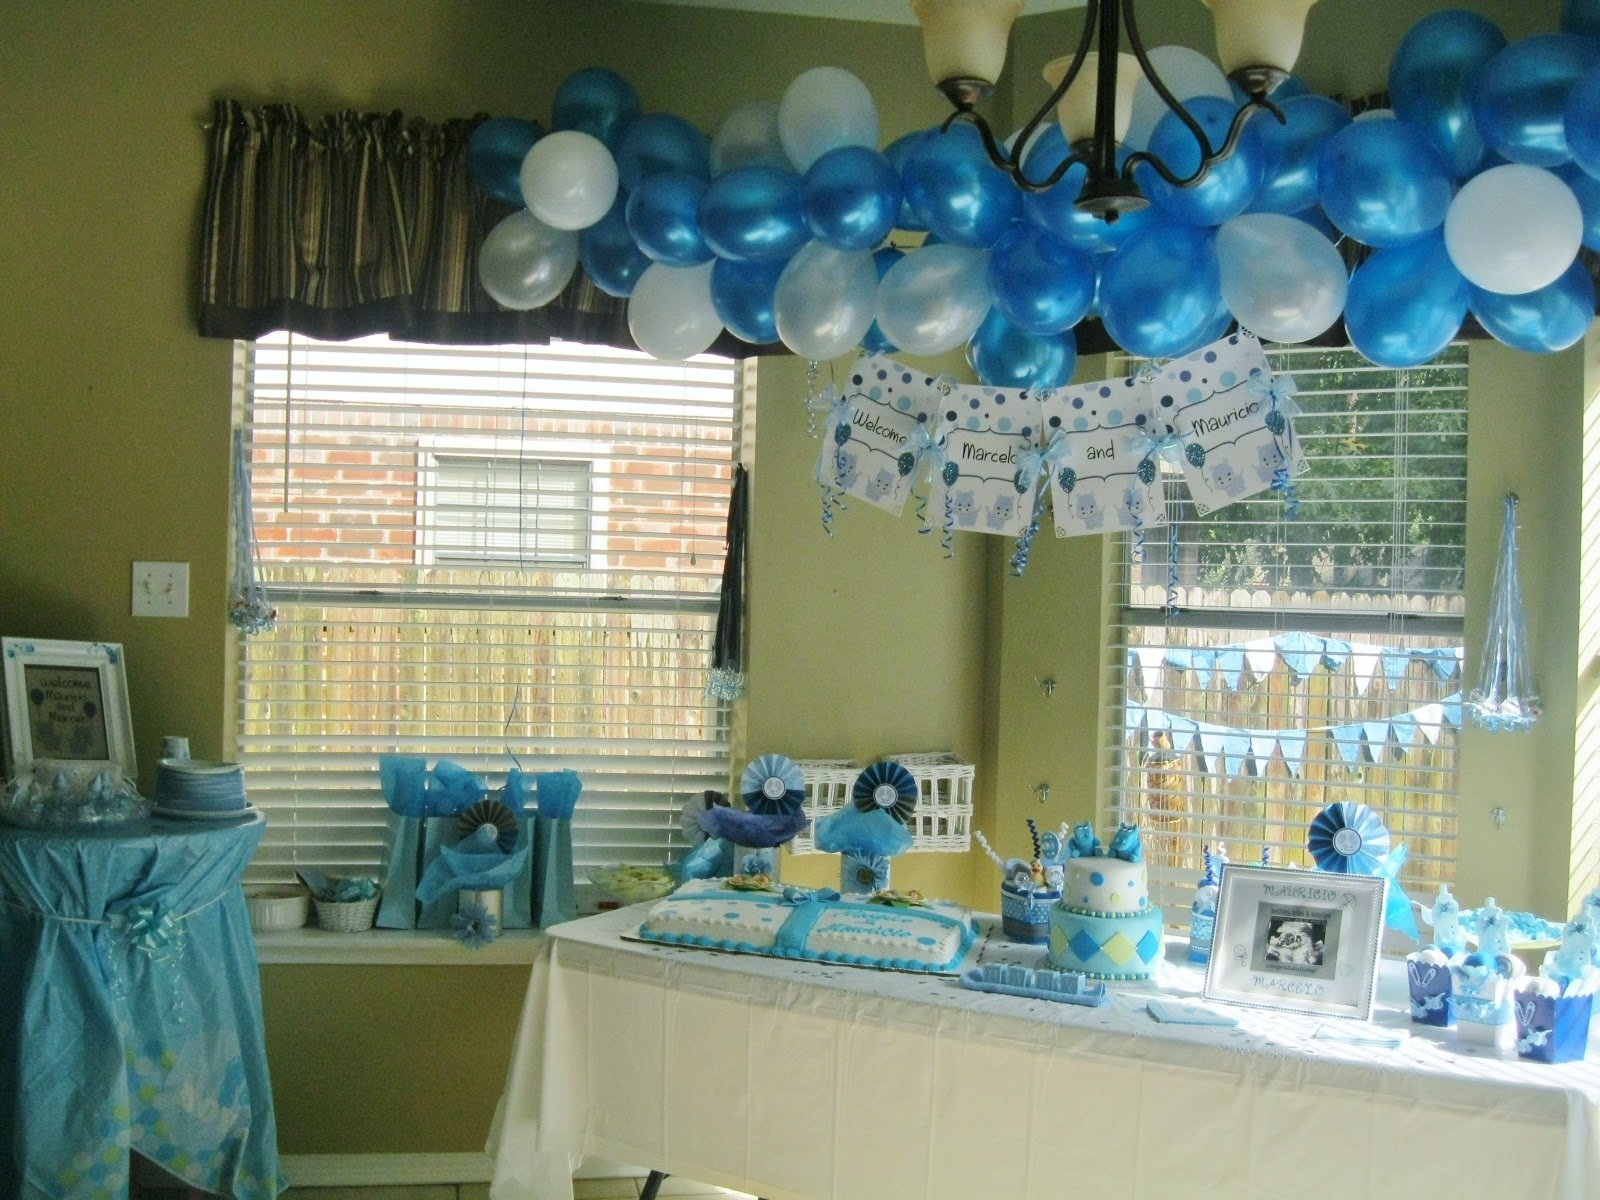 10 Trendy Baby Shower Decorations Ideas For Boys elephant baby shower decorations cakes excerpt boy themes loversiq 1 2020